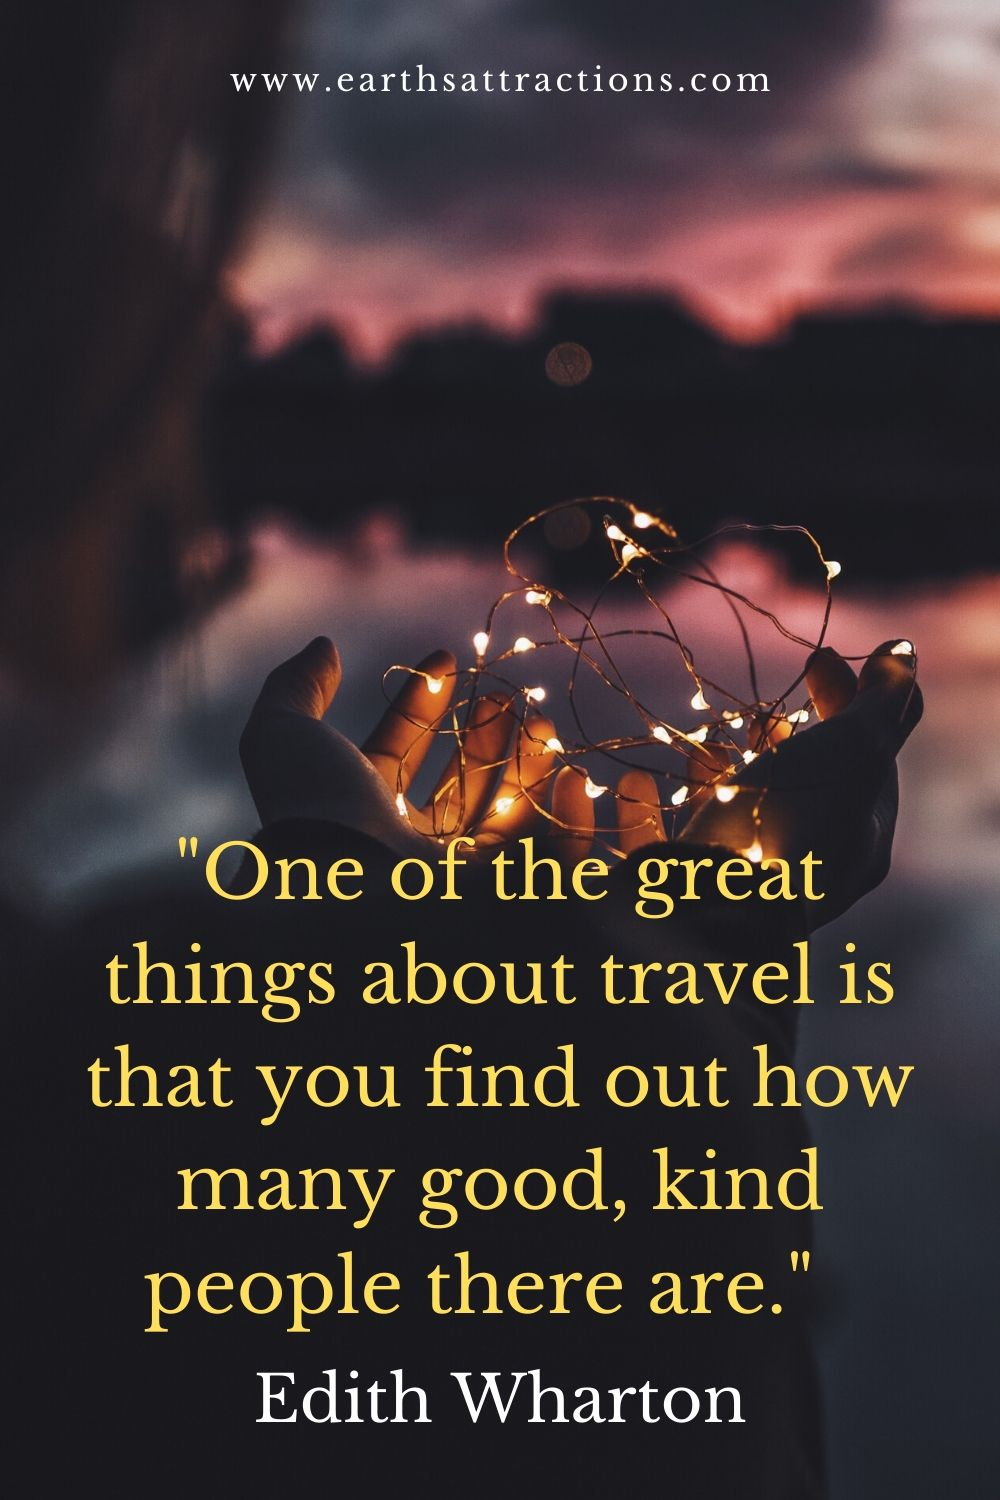 """""""One of the great things about travel is that you find out how many good, kind people there are."""" - Edith Wharton. Read this article now and see the top travel quotes to inspire wanderlust!"""